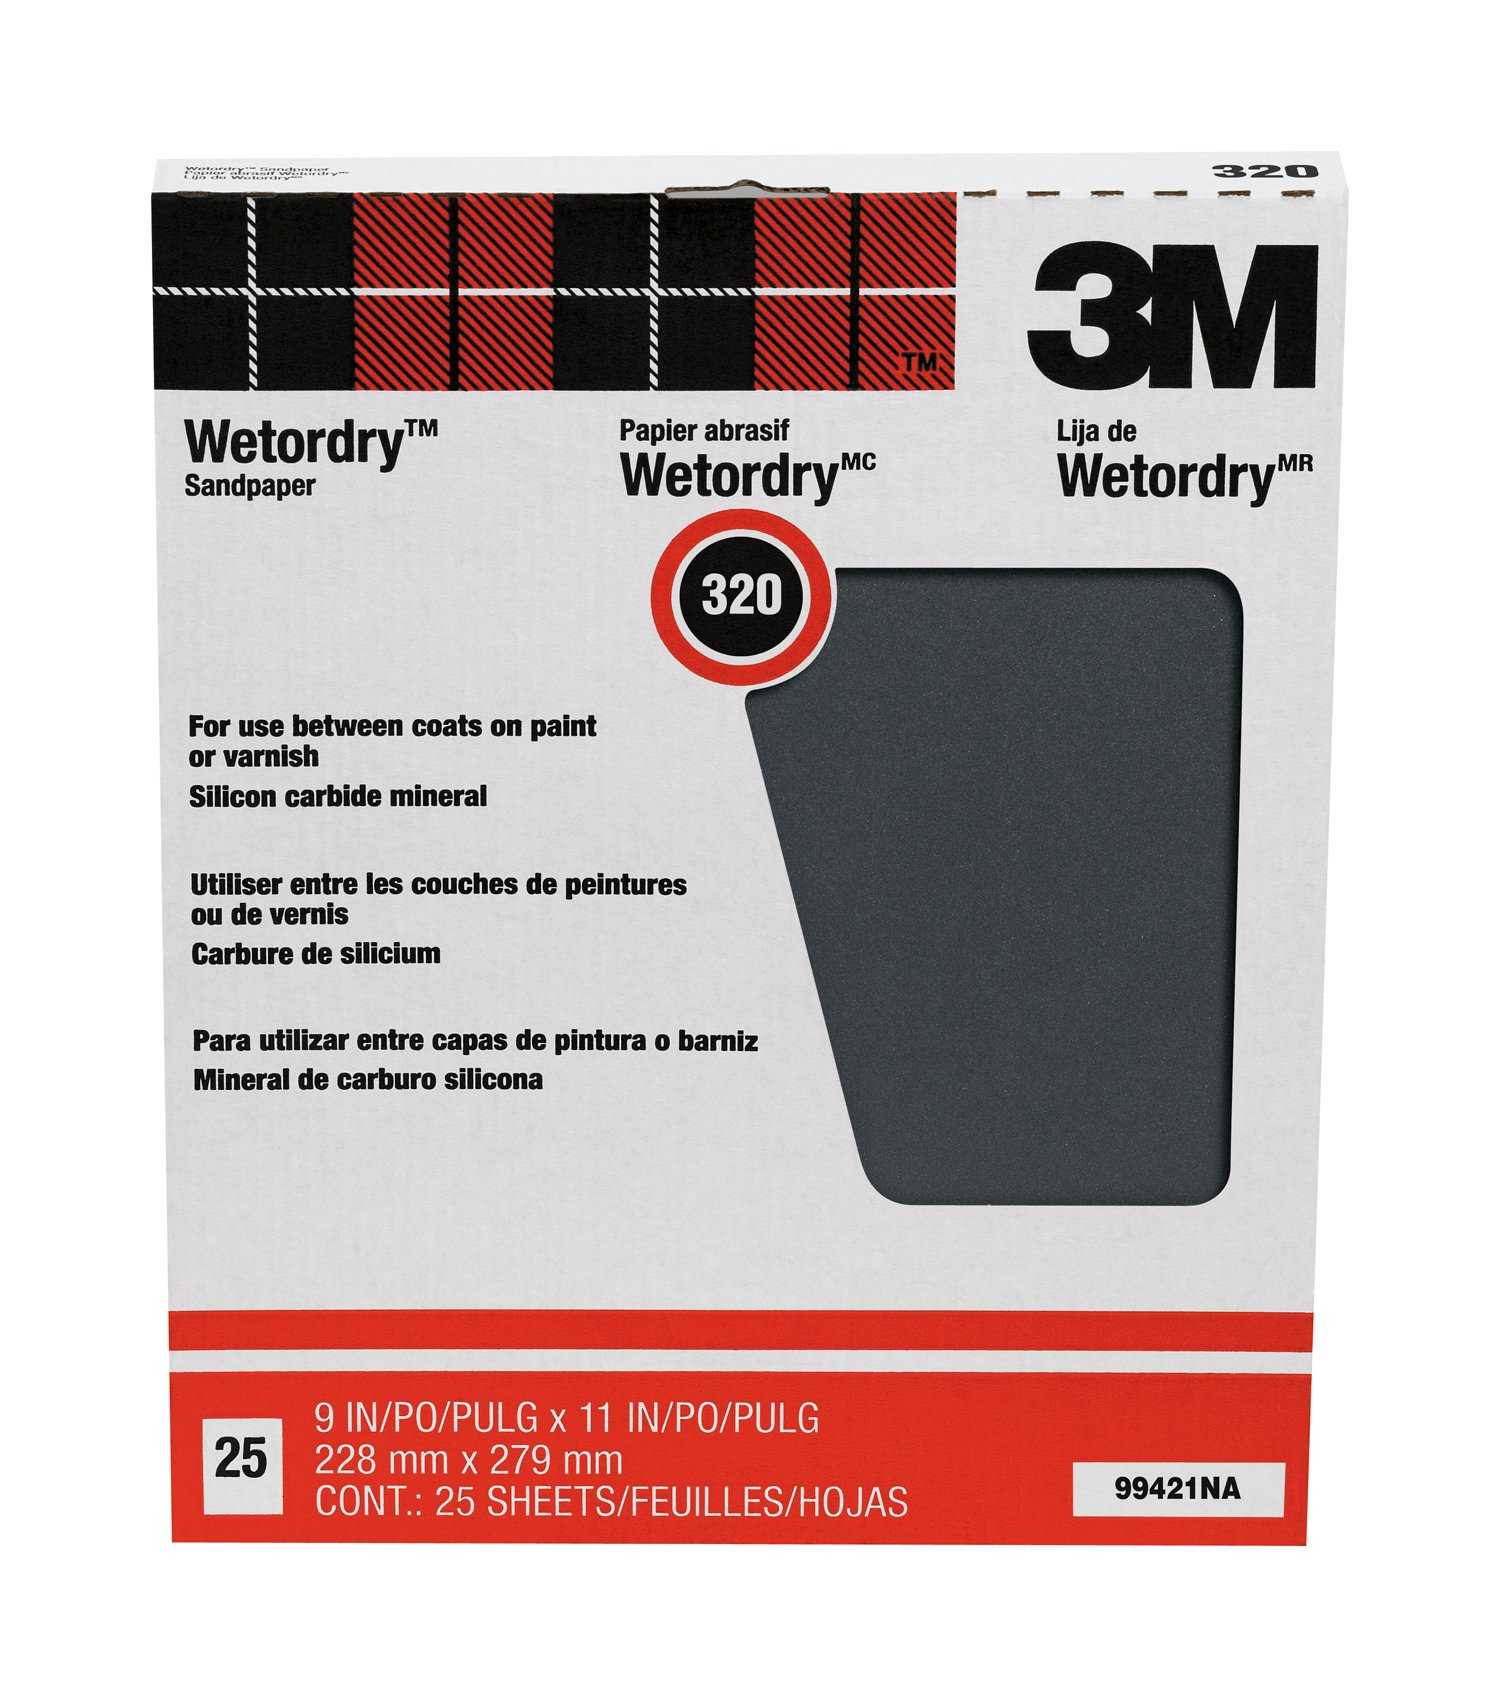 3M Pro-Pak Wetordry Between Finish Coats Sanding Sheets, 320A-Grit, 9-Inch by 11-Inch, 25-Pack by 3M